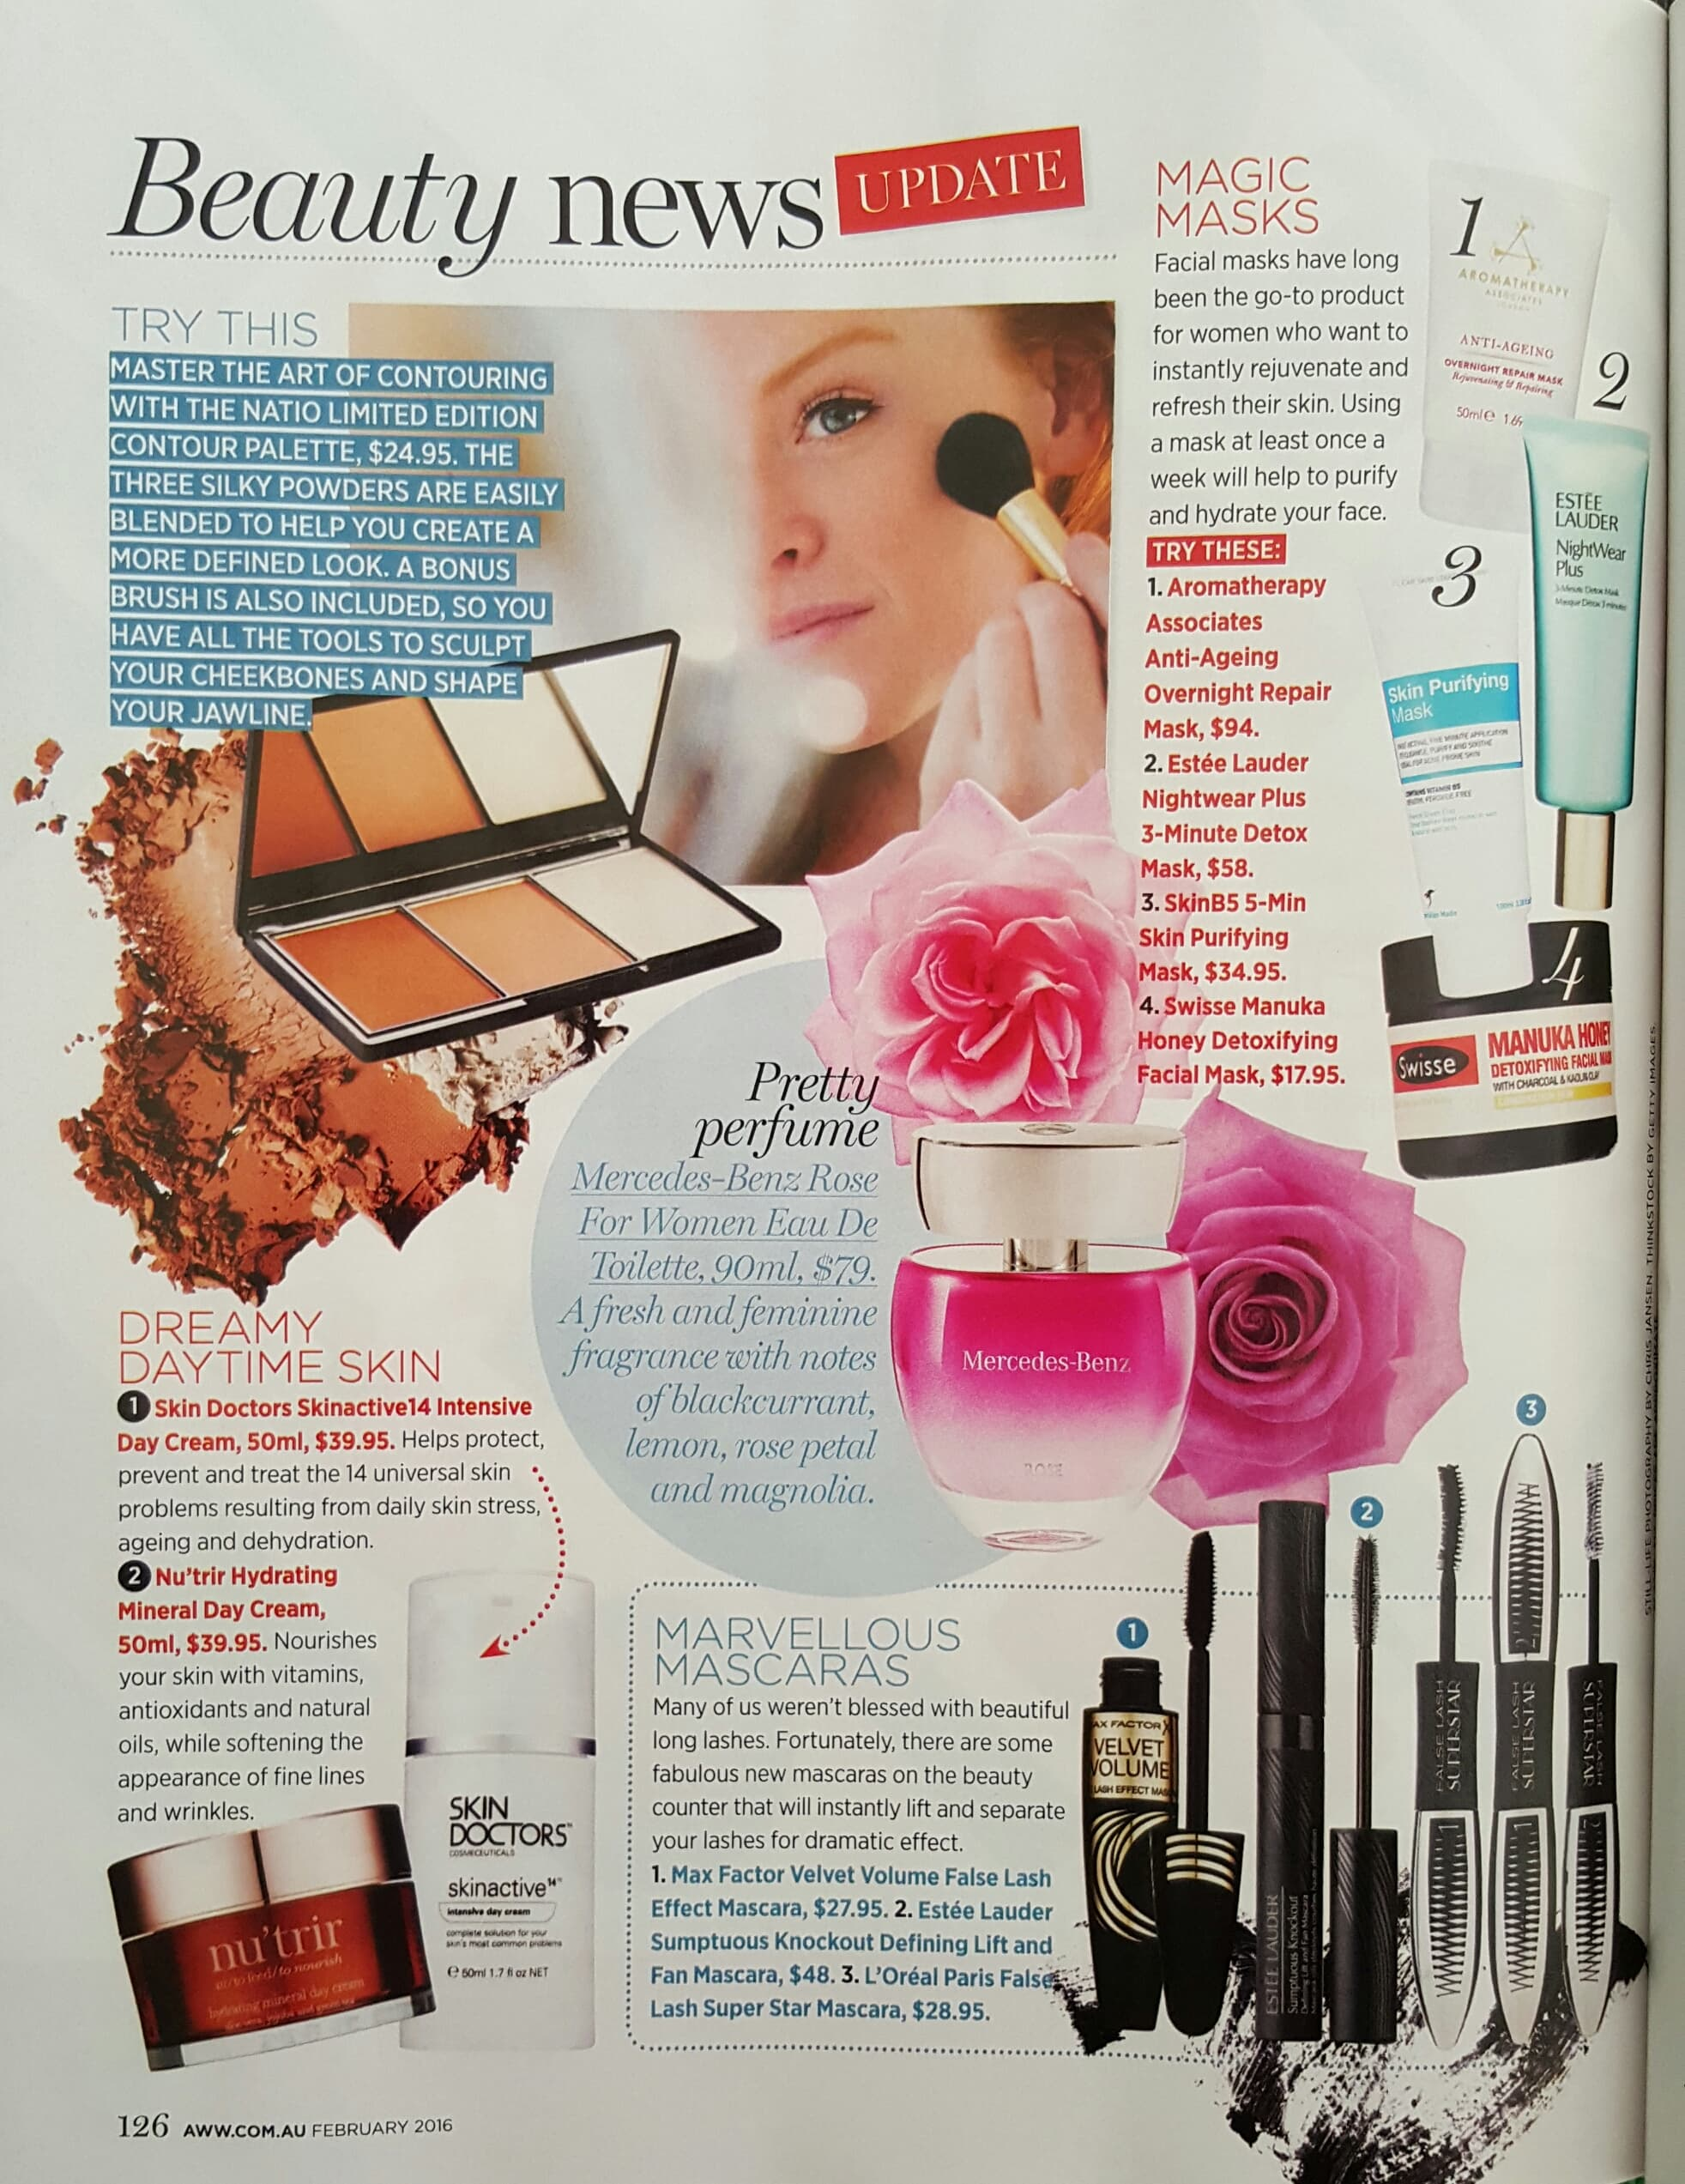 SkinB5 Clay Mask featured in Australian Women's Weekly magazine